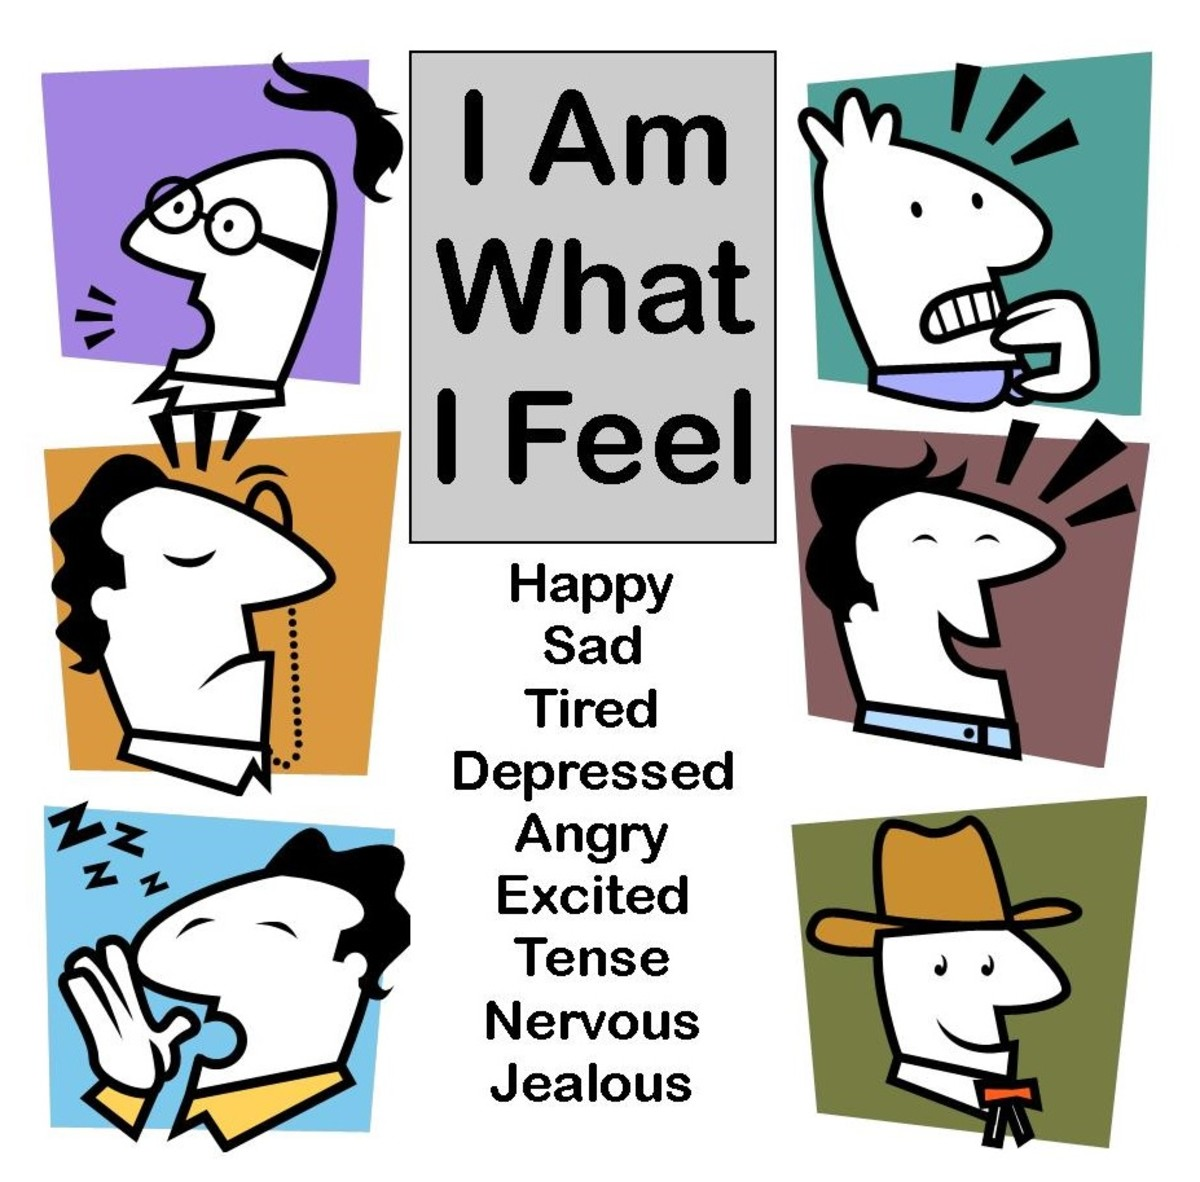 When we base our identity on how we feel, we are always having to adjust, since our feelings change frequently depending upon what we are thinking.